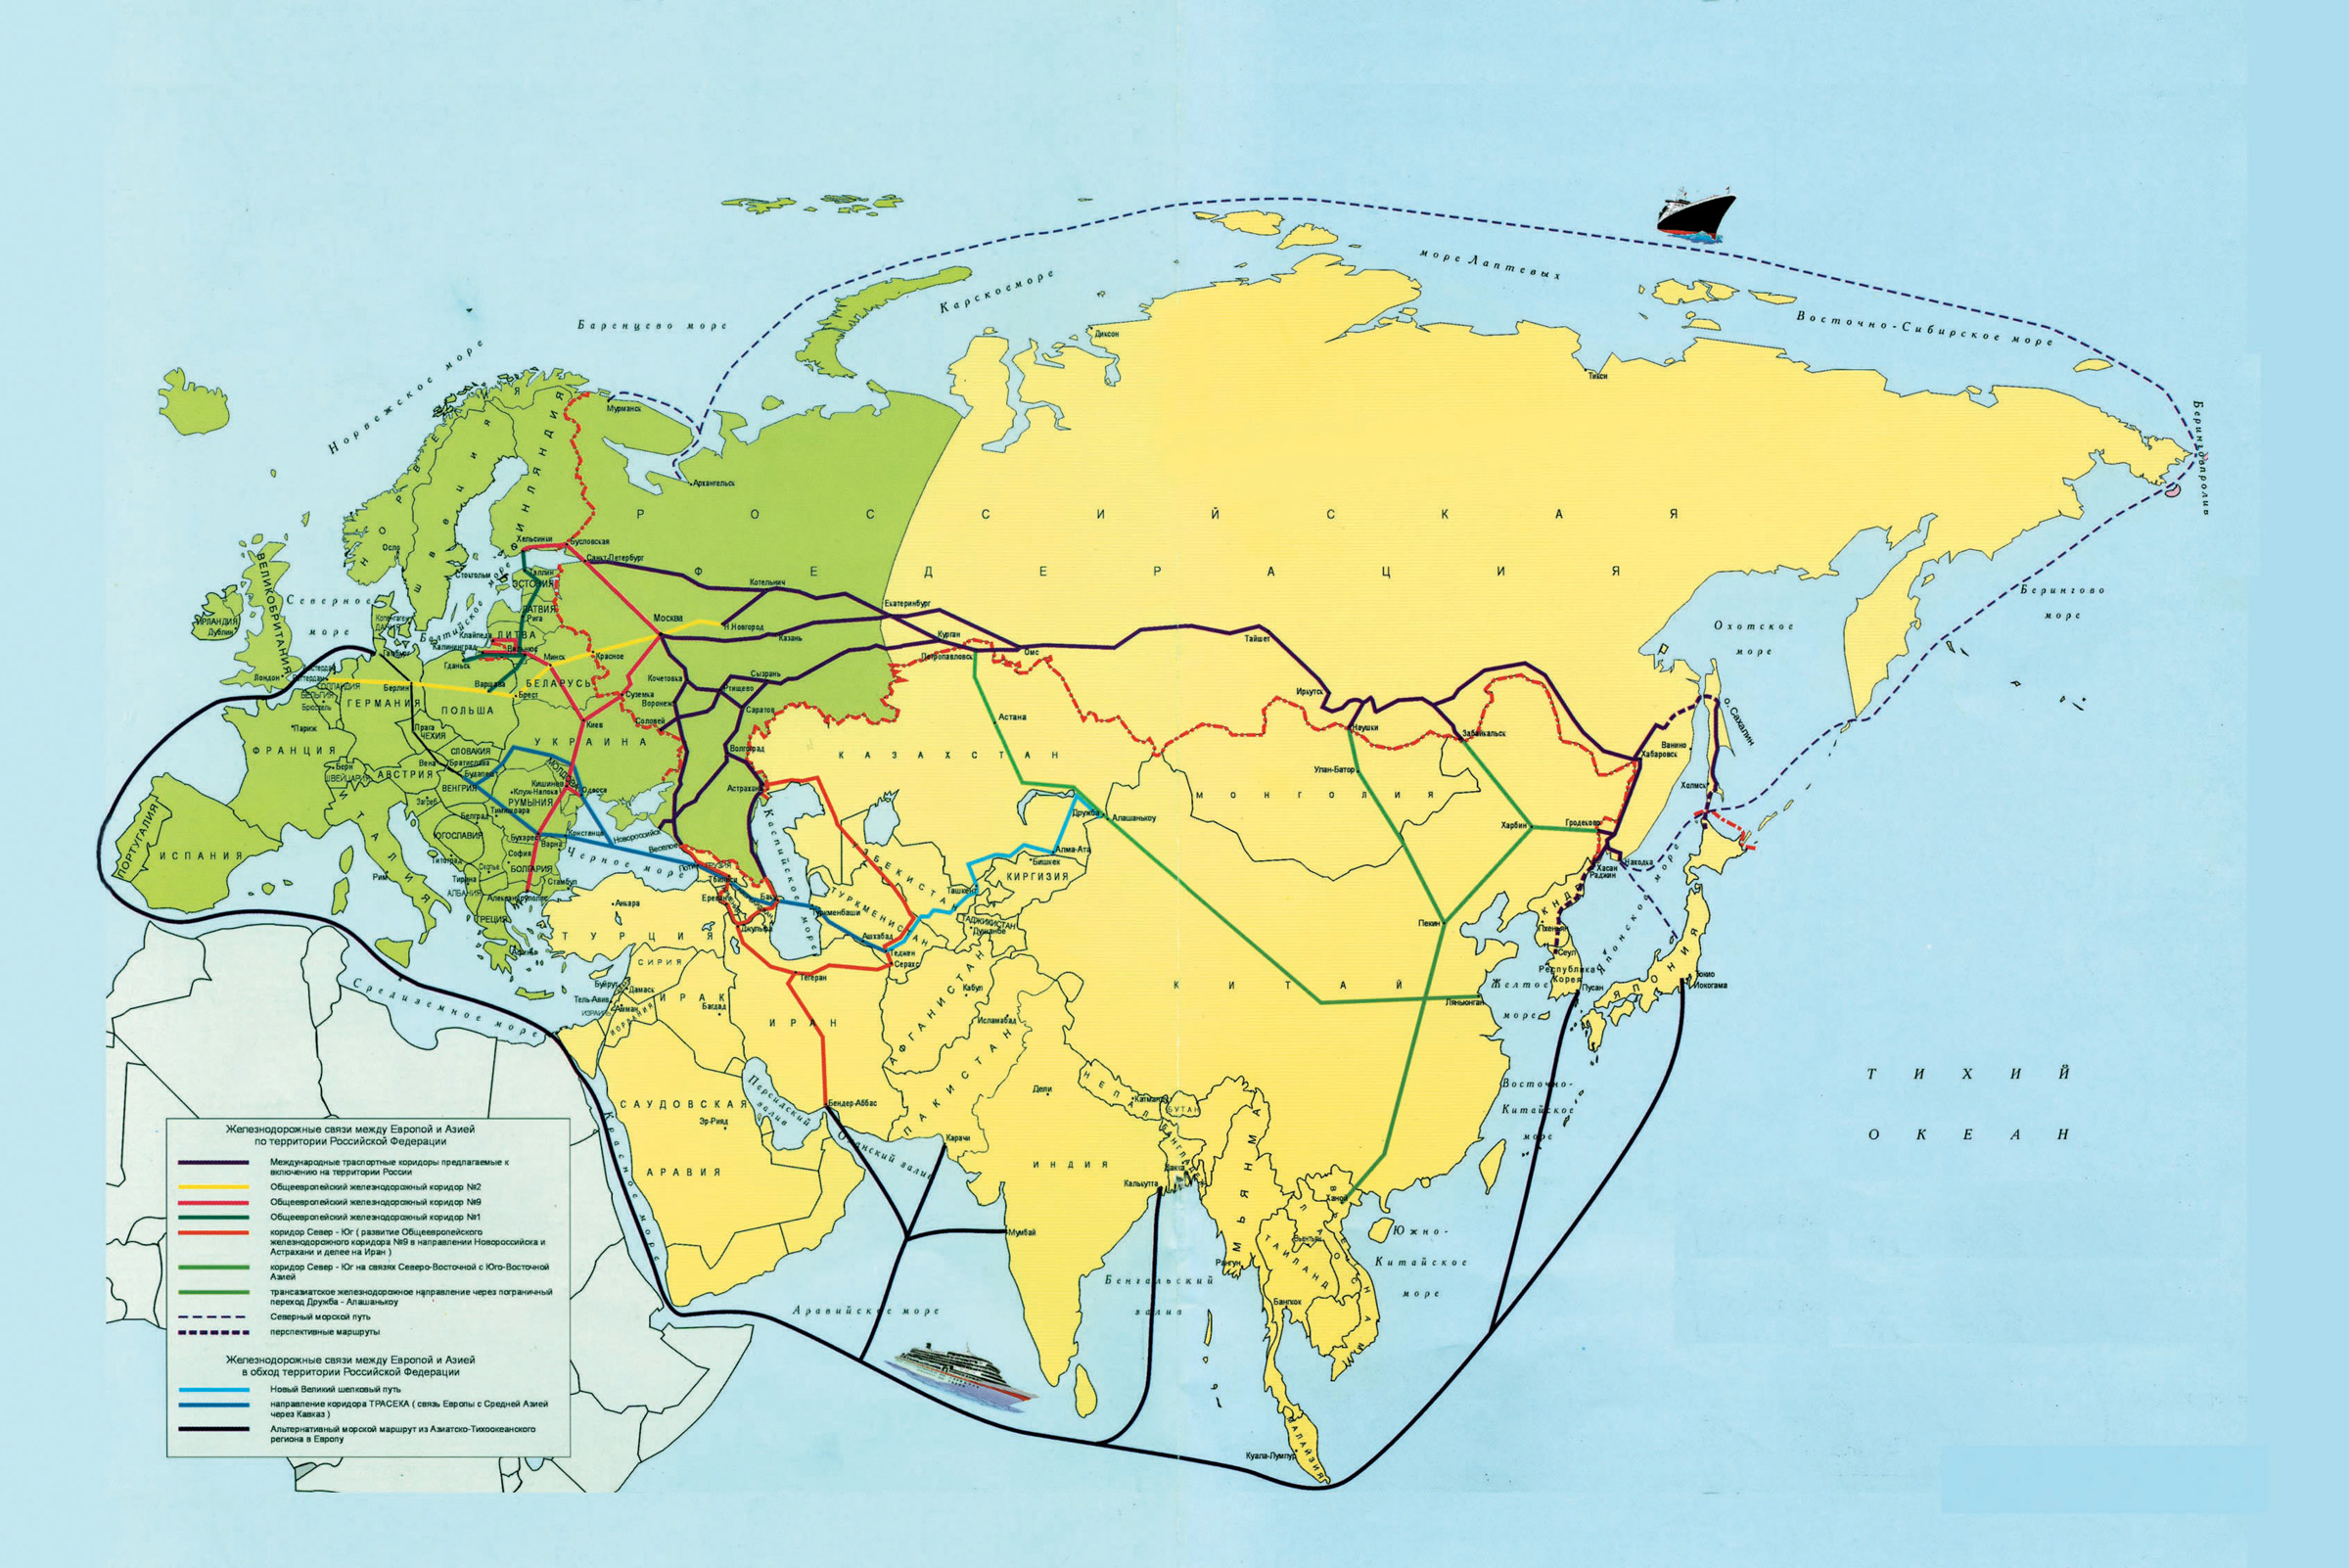 Transport corridors between Europe and Asia